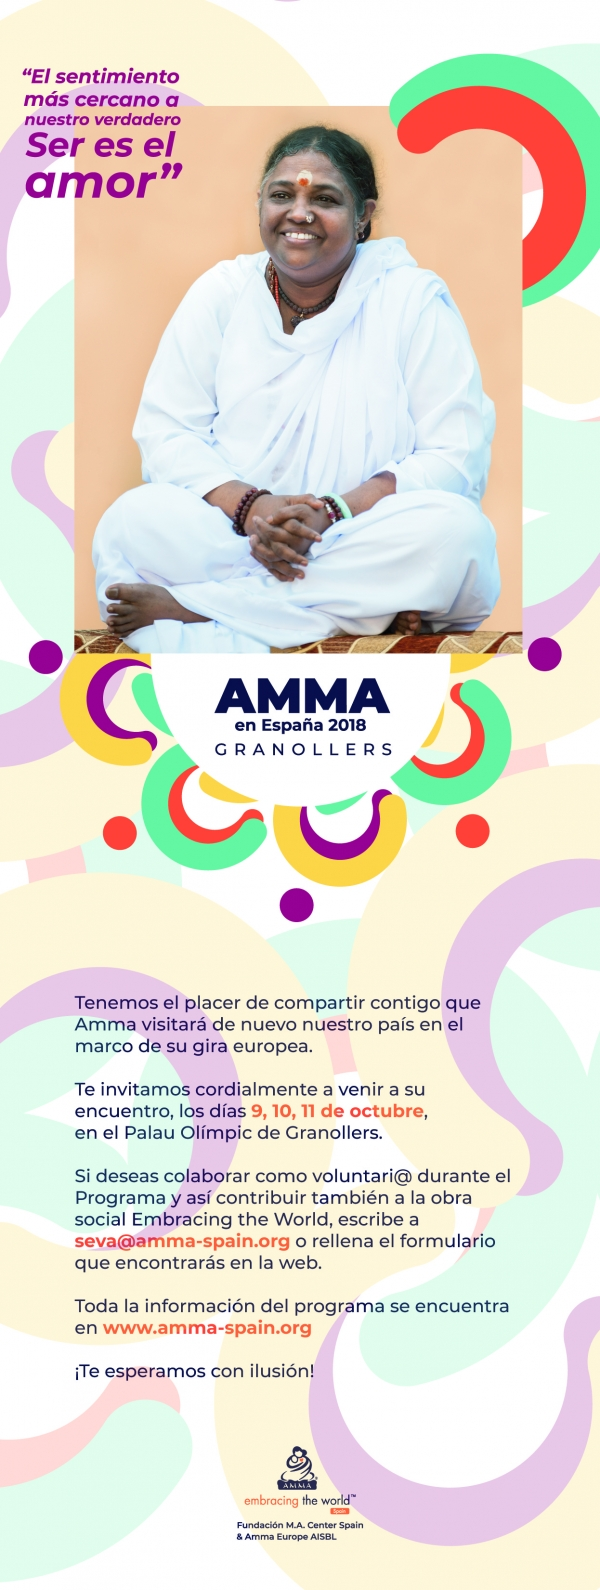 Amma in Granollers (Barcelona). 9 - 11 october 2018